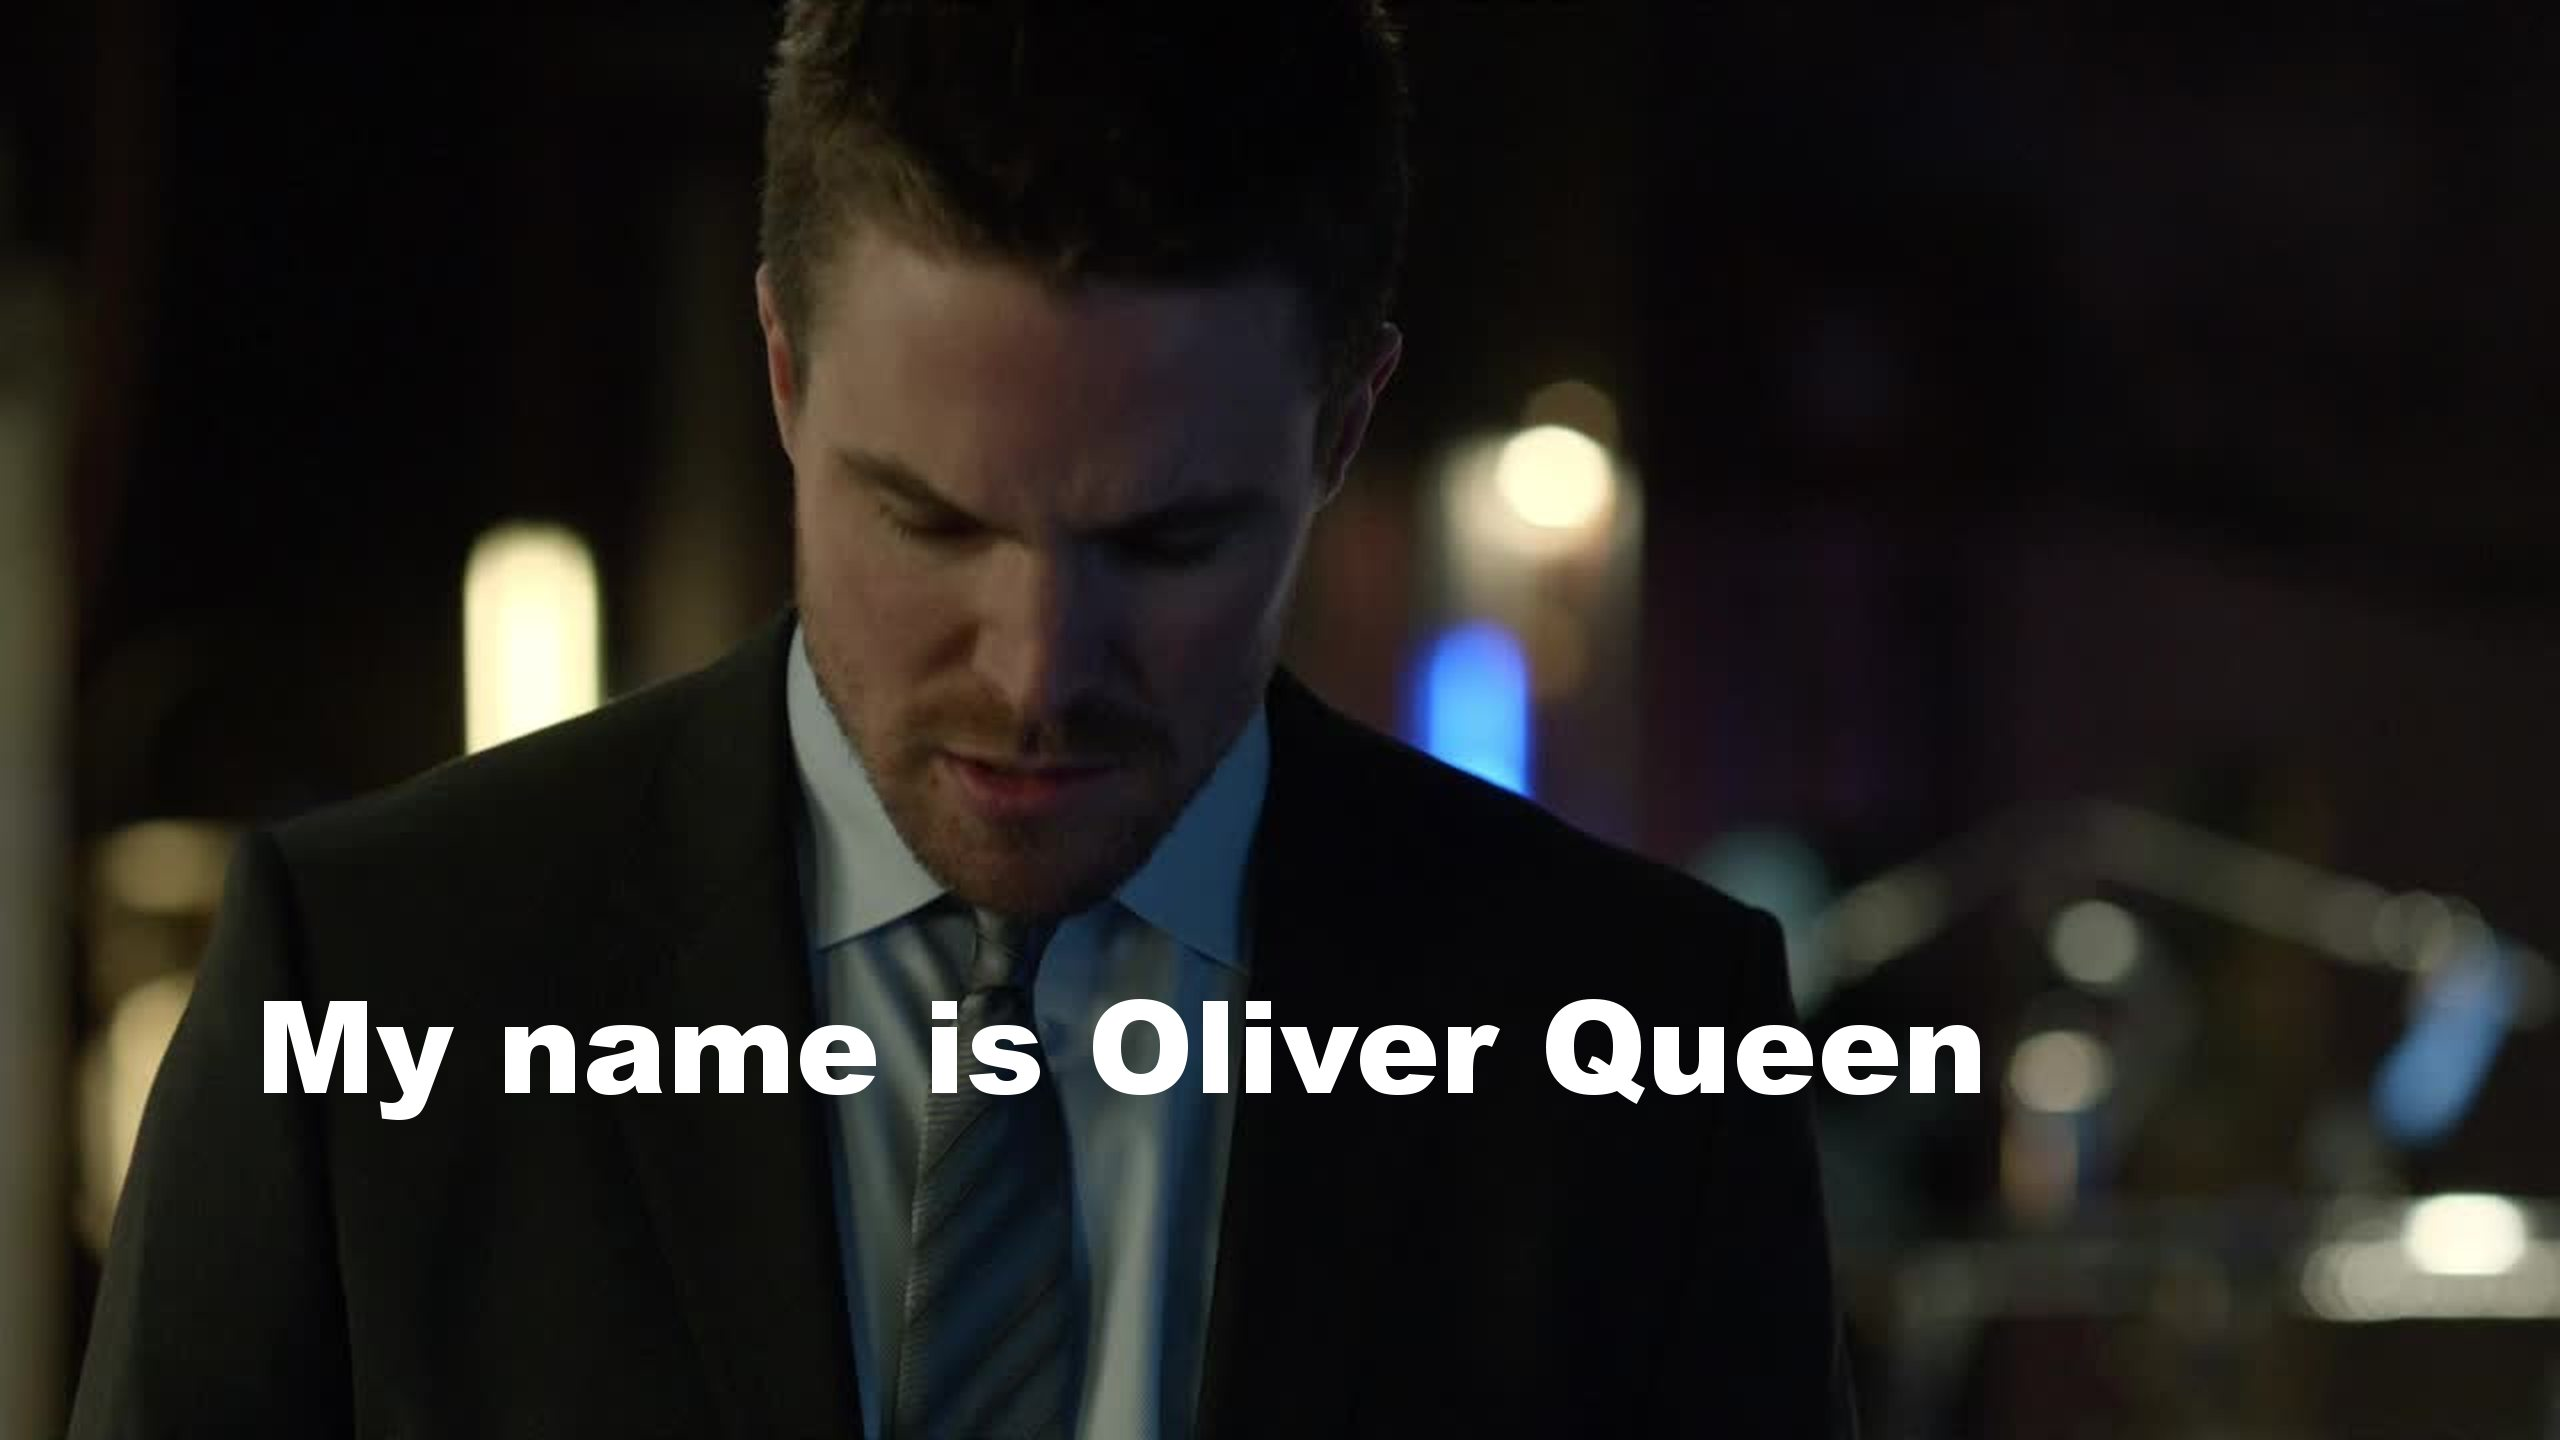 Please, tell the authors we know hIs name is Oliver Queen. No need to remind us every episode!!